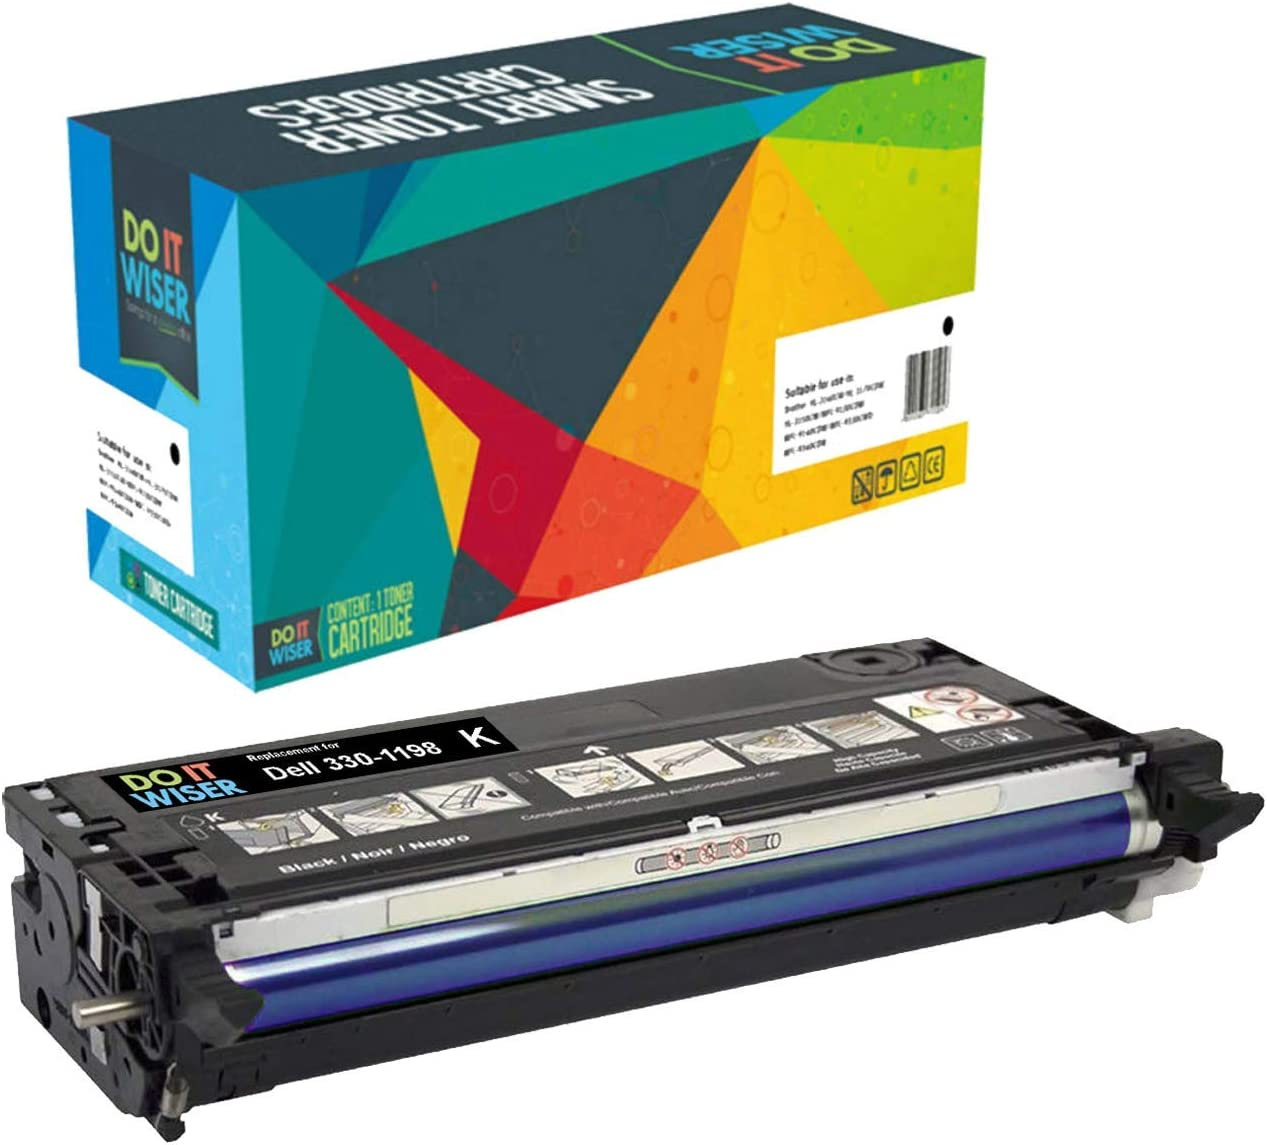 Do it Wiser Compatible Toner Cartridge Replacement for Dell 3130 3130cn - 330-1198 - Black High Yield